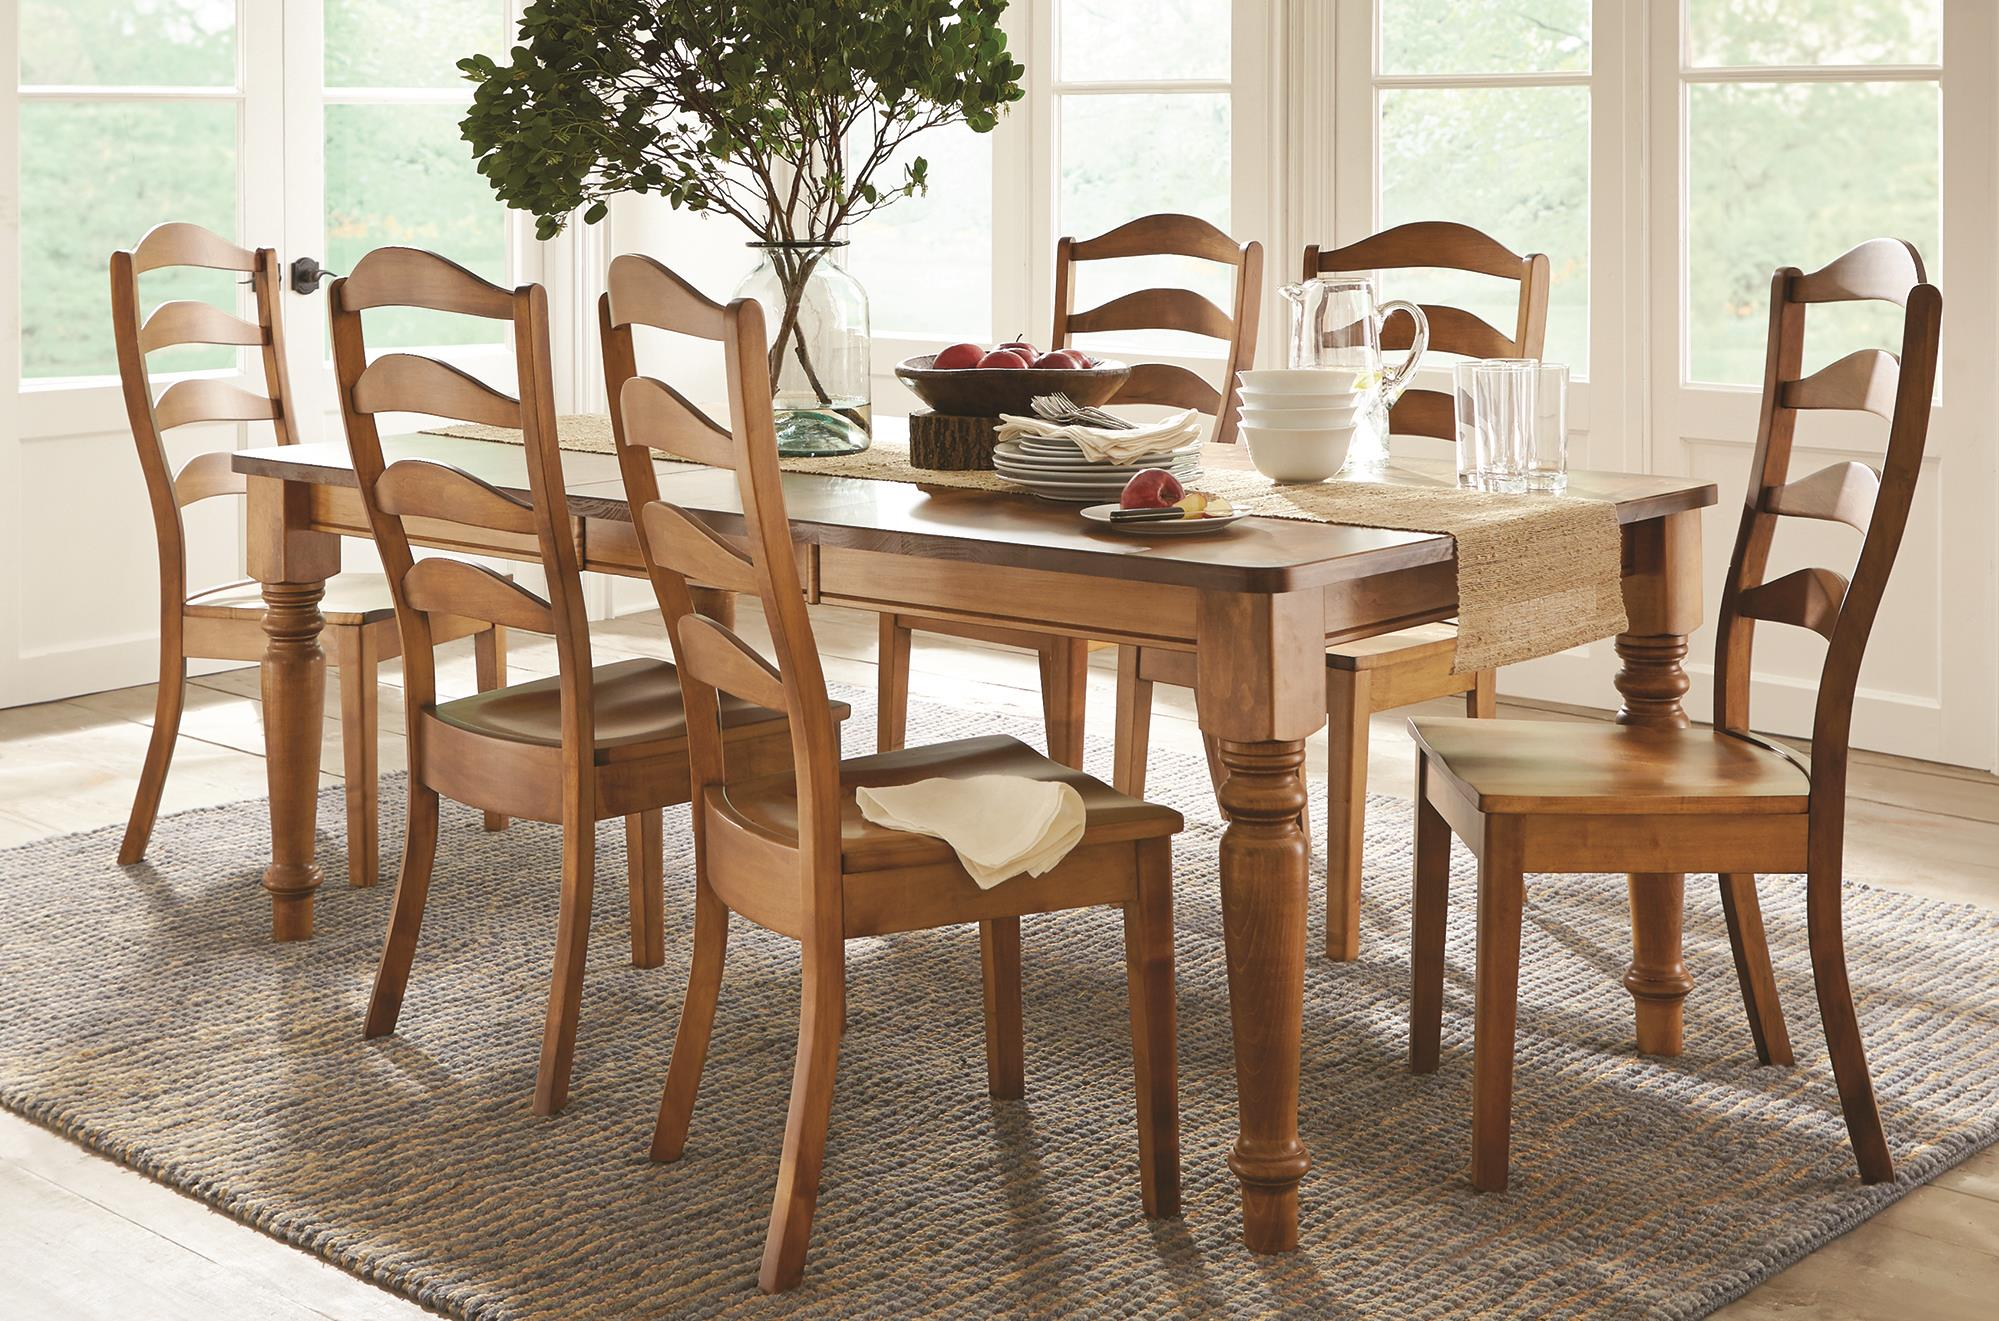 Colfax 5 Piece Solid Wood Dining Set Morris Home Dining 5